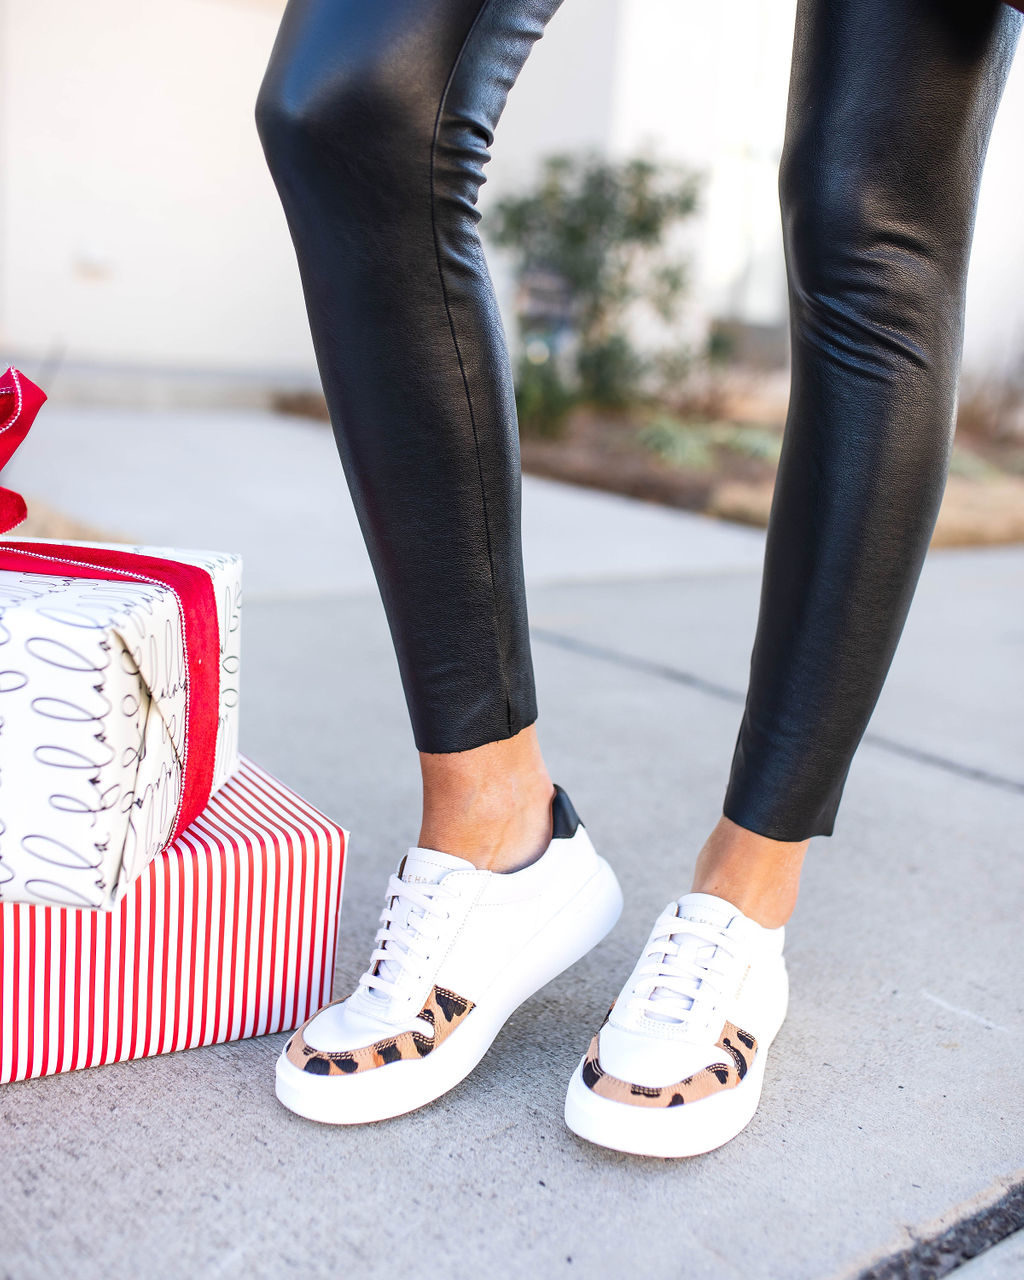 Last Minute Gifts for Him & Her from Cole Haan